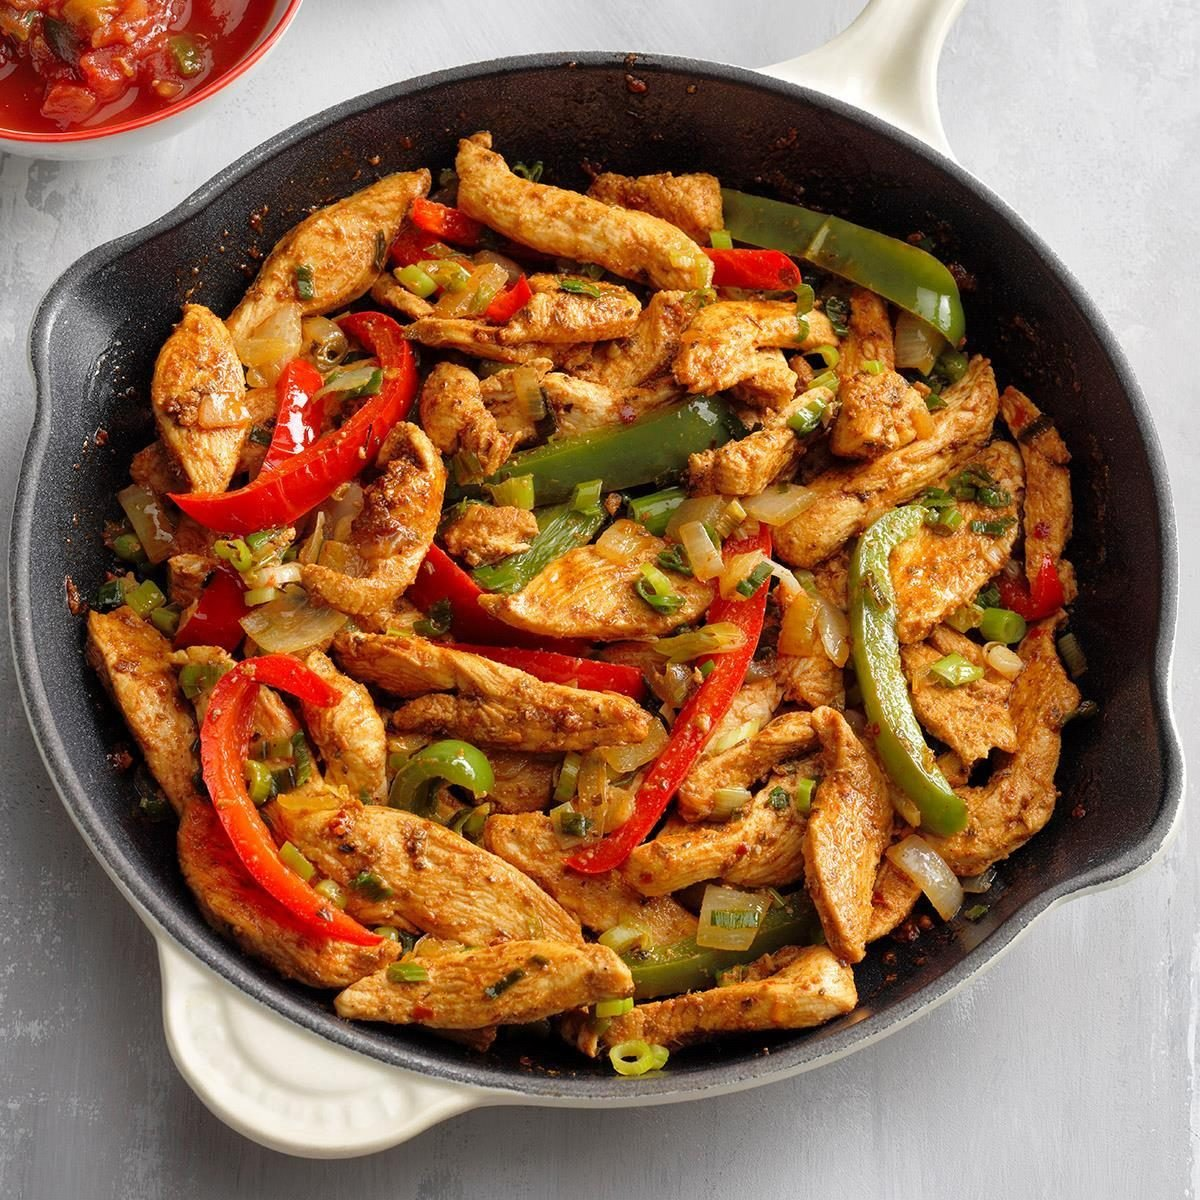 How to Make the Best Fajitas at Home